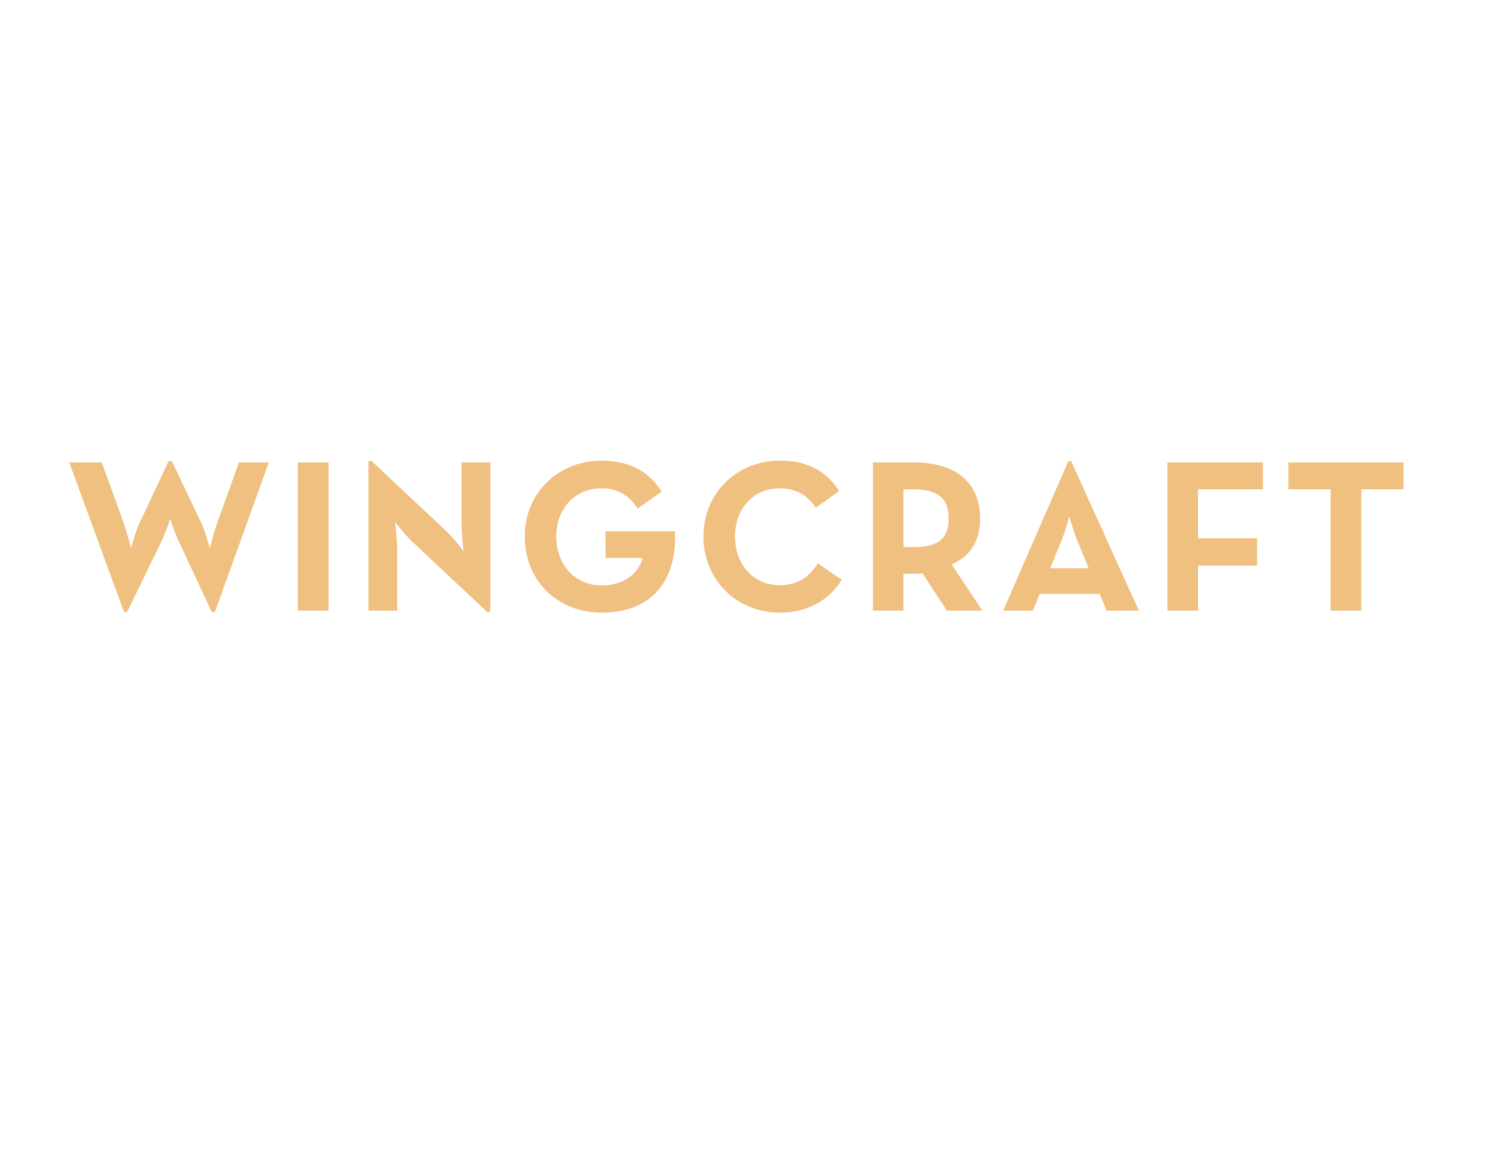 WINGCRAFT